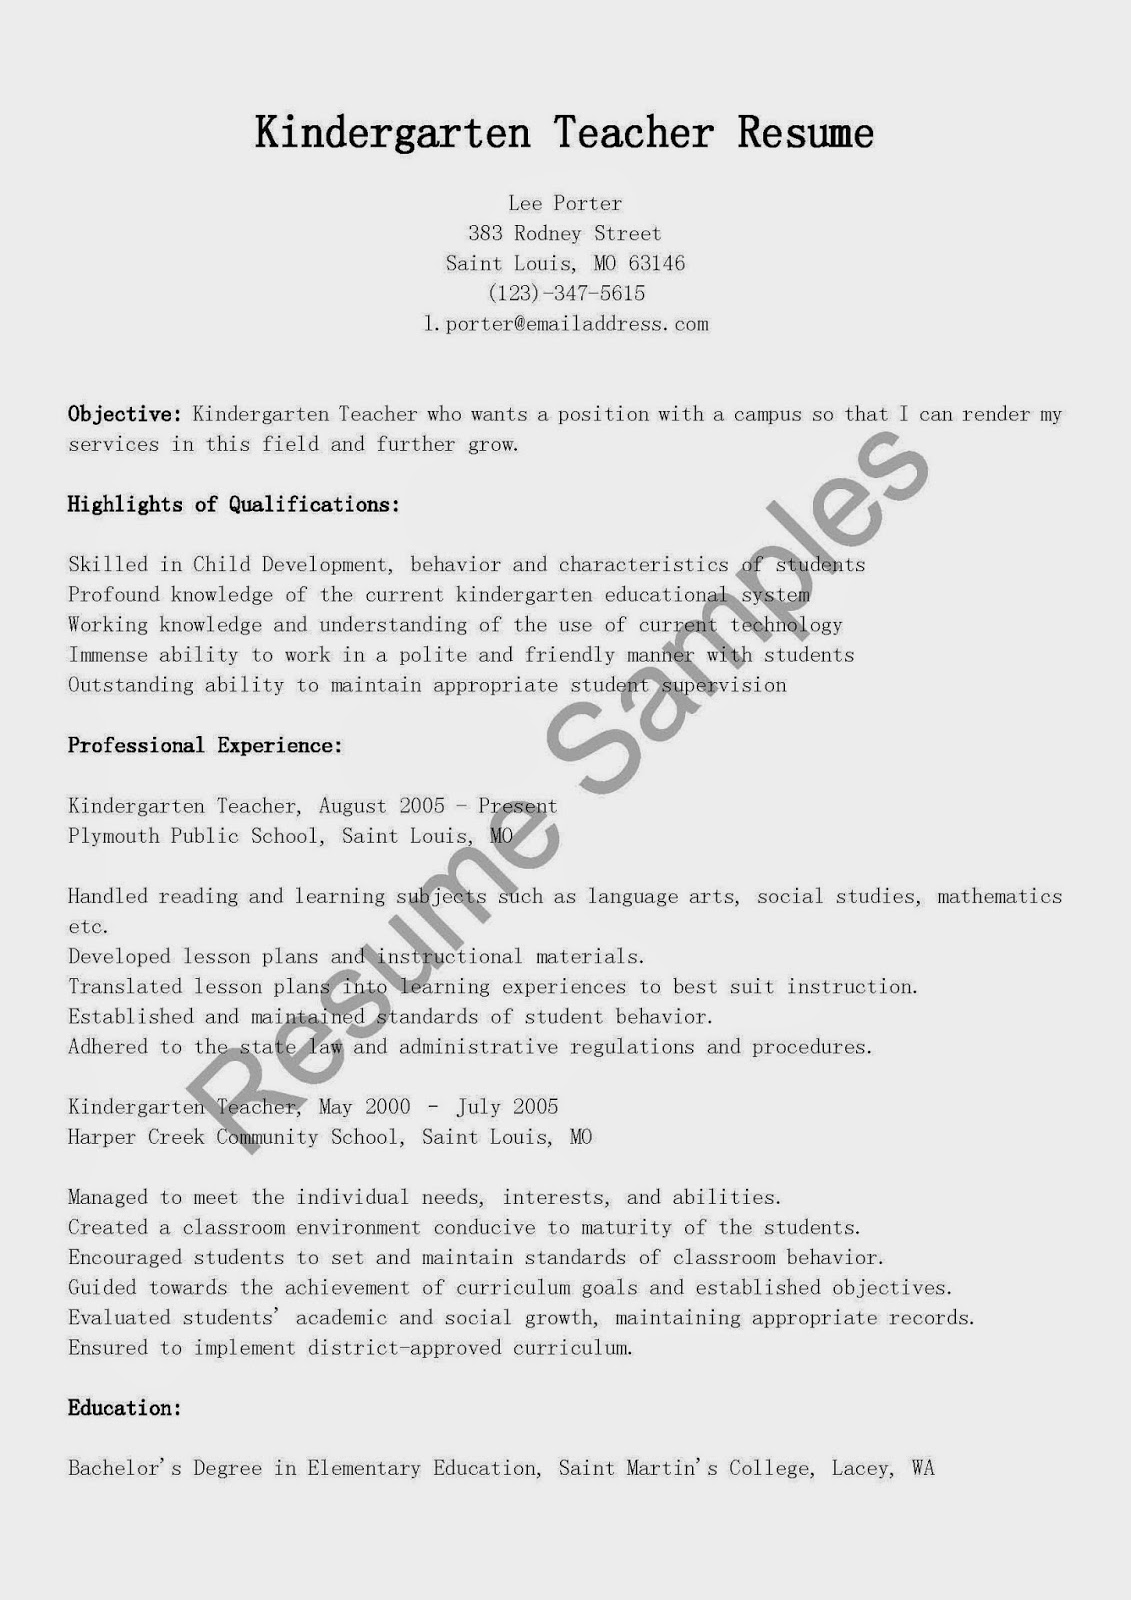 Preschool Assistant Teacher Resume With No Experience